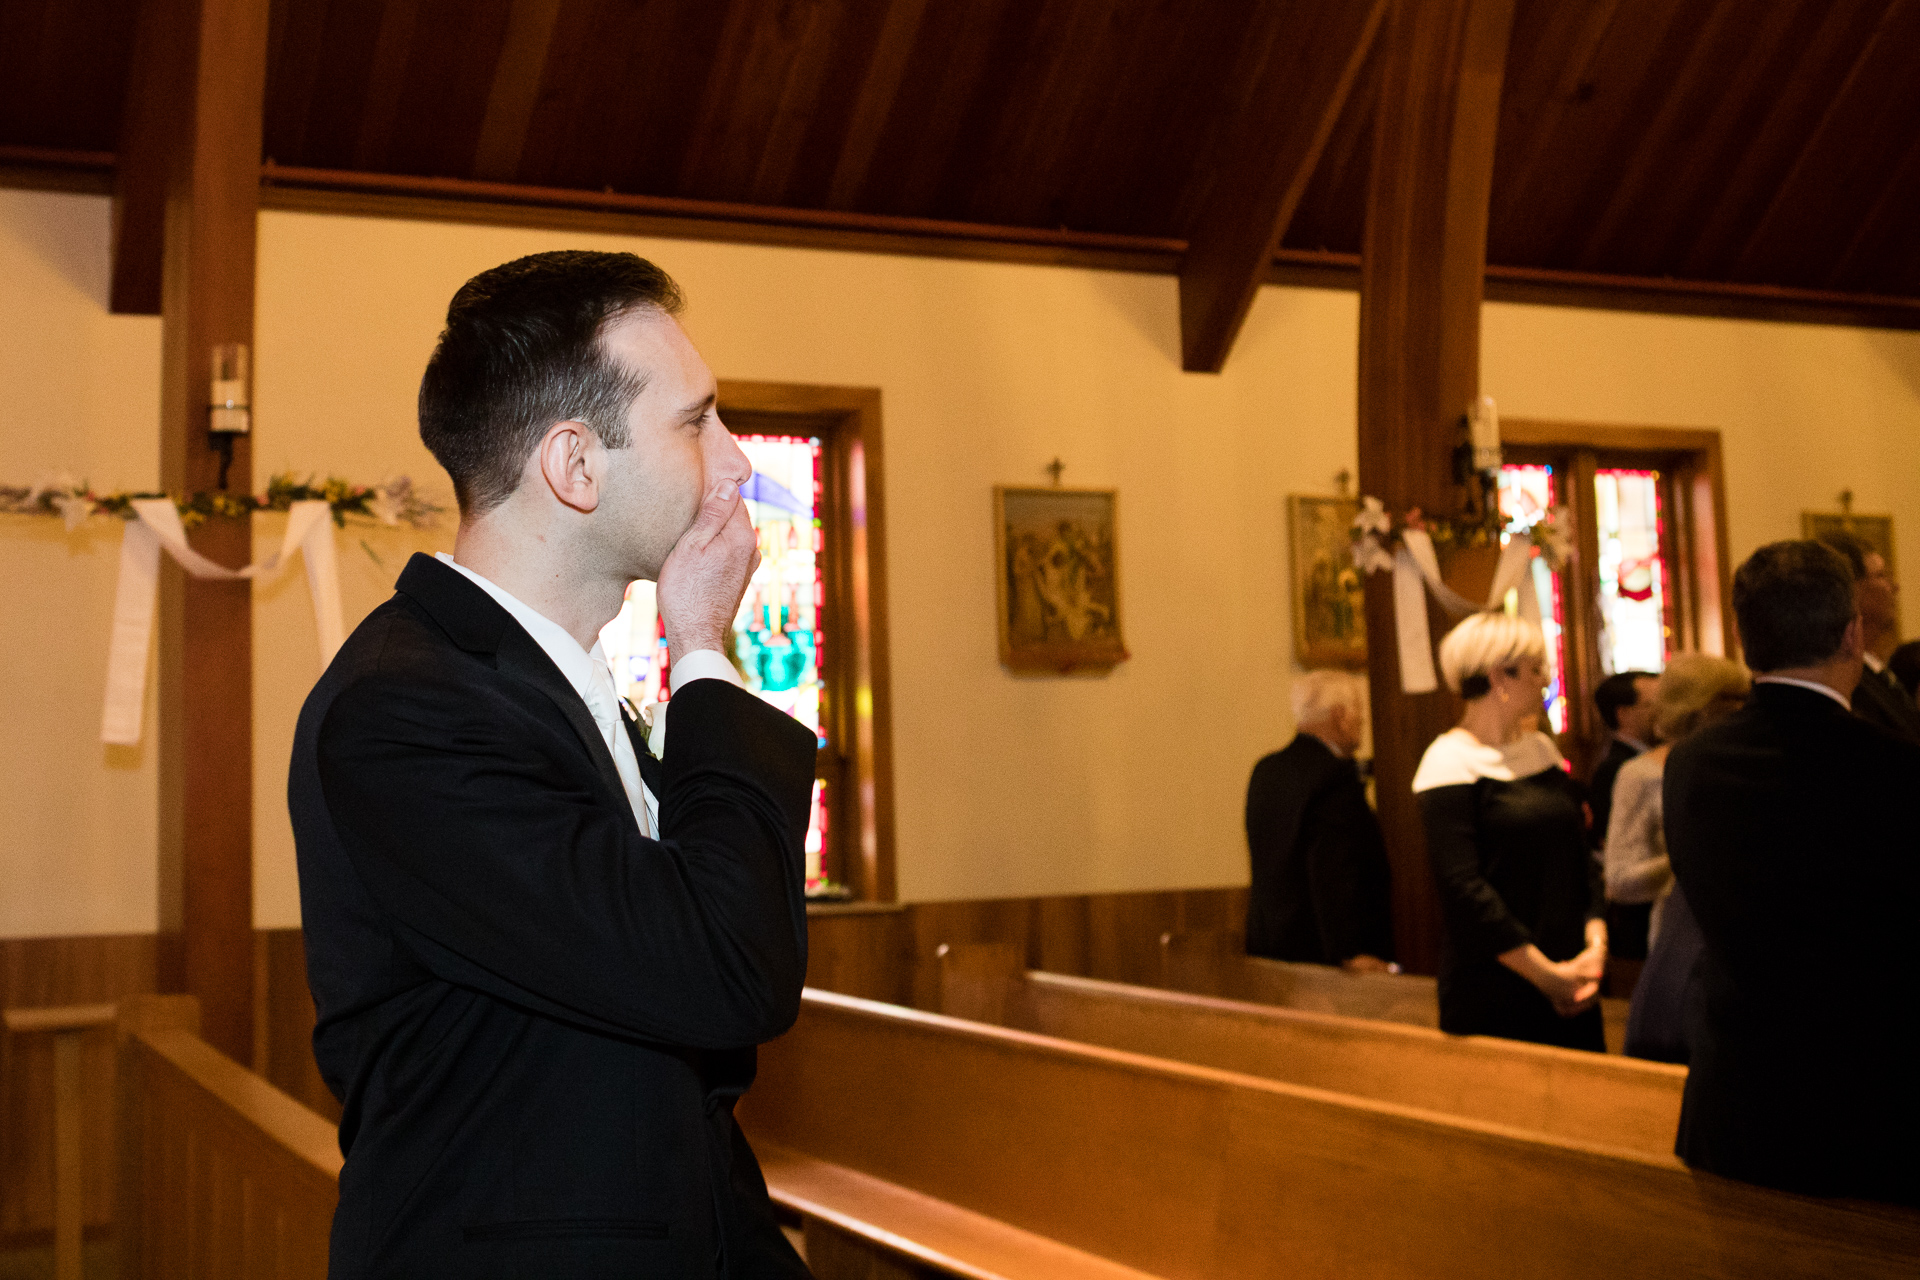 Groom excited for bride walking down the aisle